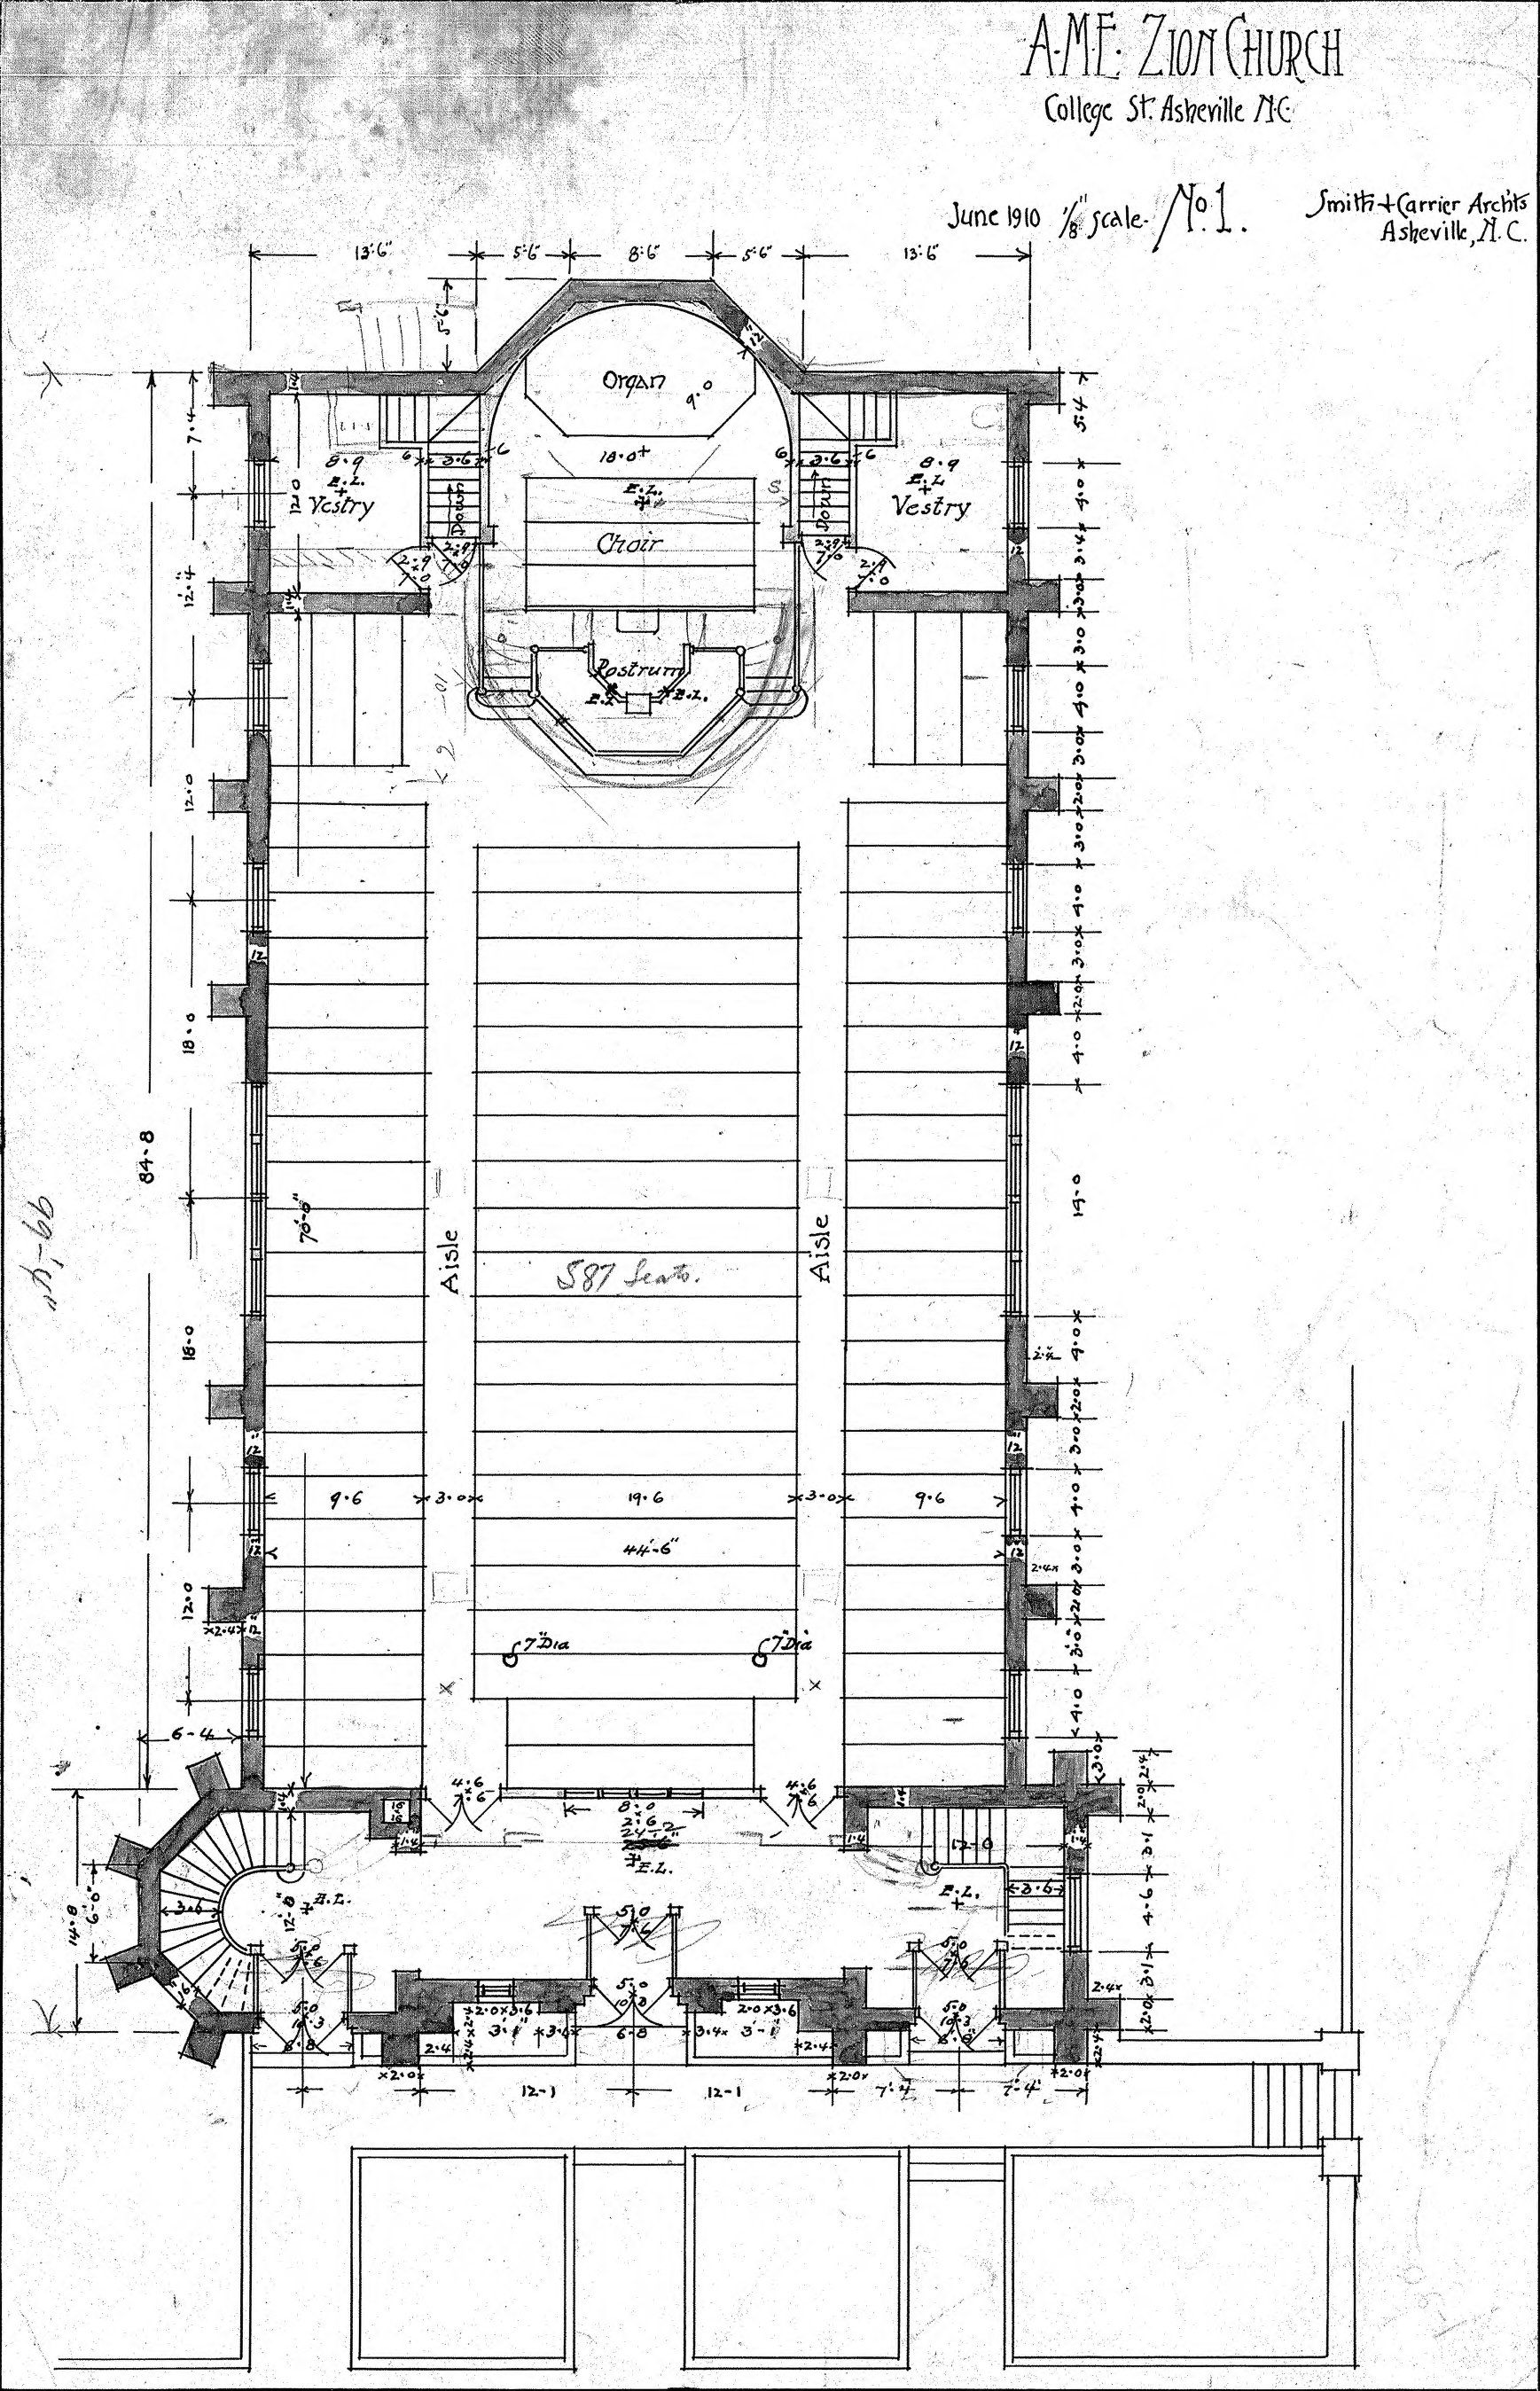 Church floor plans museums architecture pinterest for Church designs and floor plans